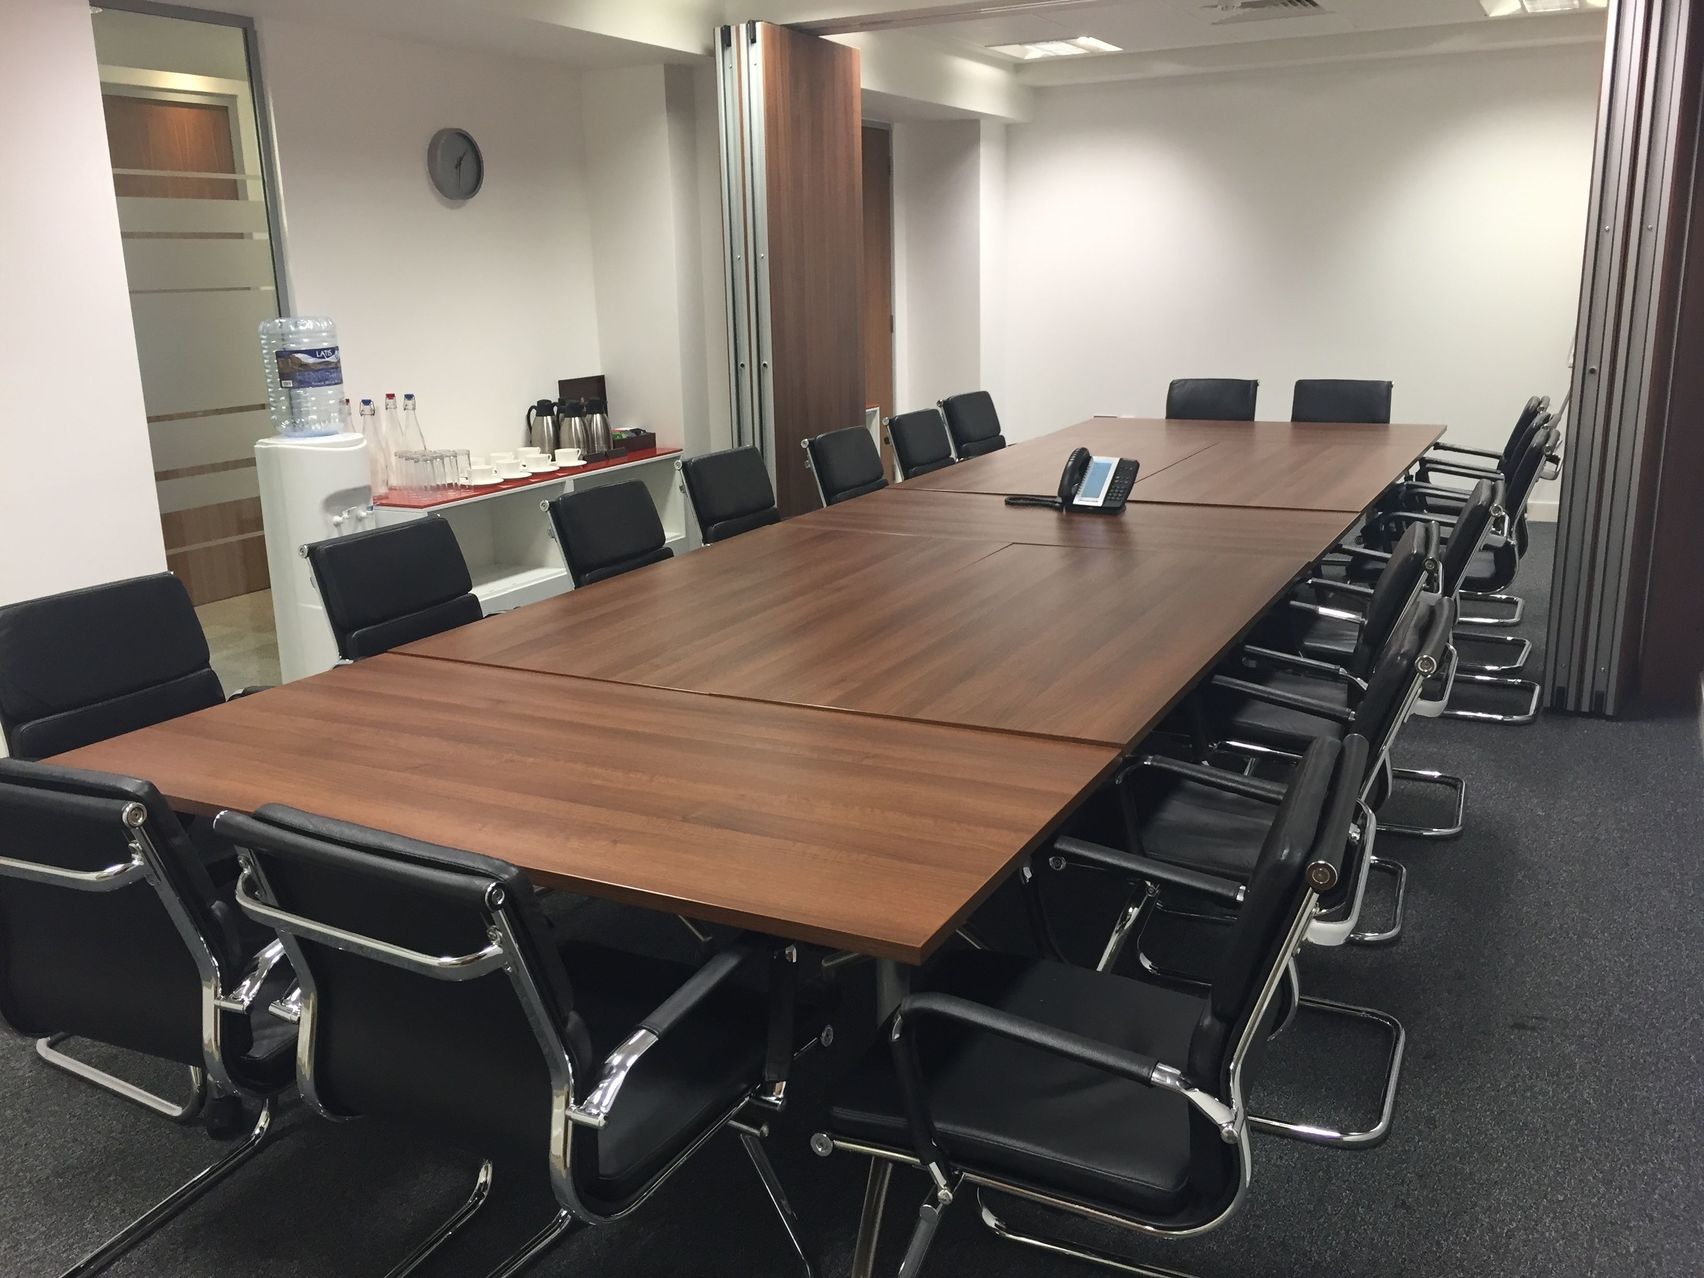 Meeting Room - Lecture Style, Becket House